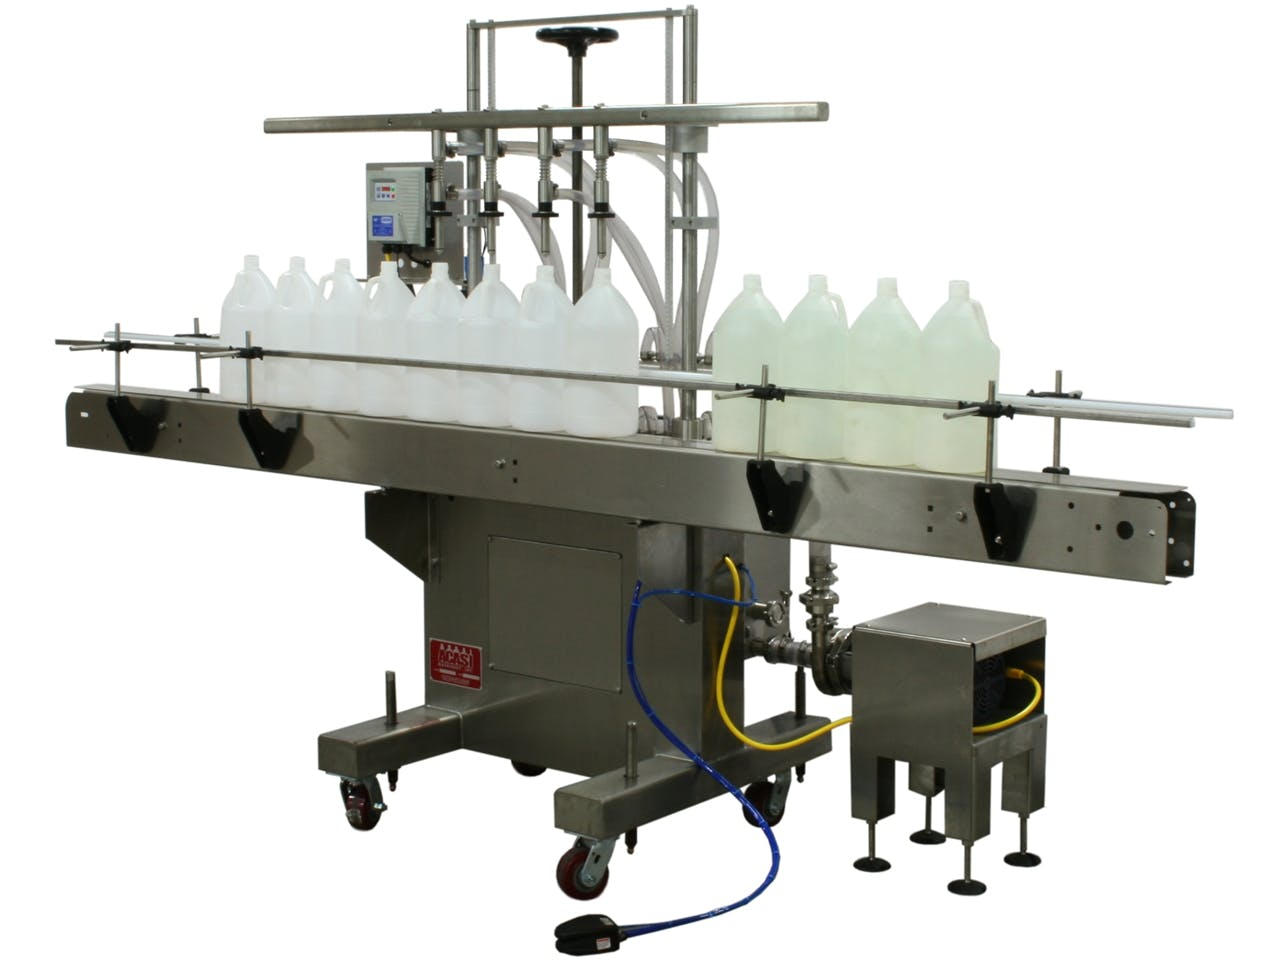 Semi-Automatic Pressure Overflow Filler - Model GIS 3300 Bottle filler sold by ACASI Machinery